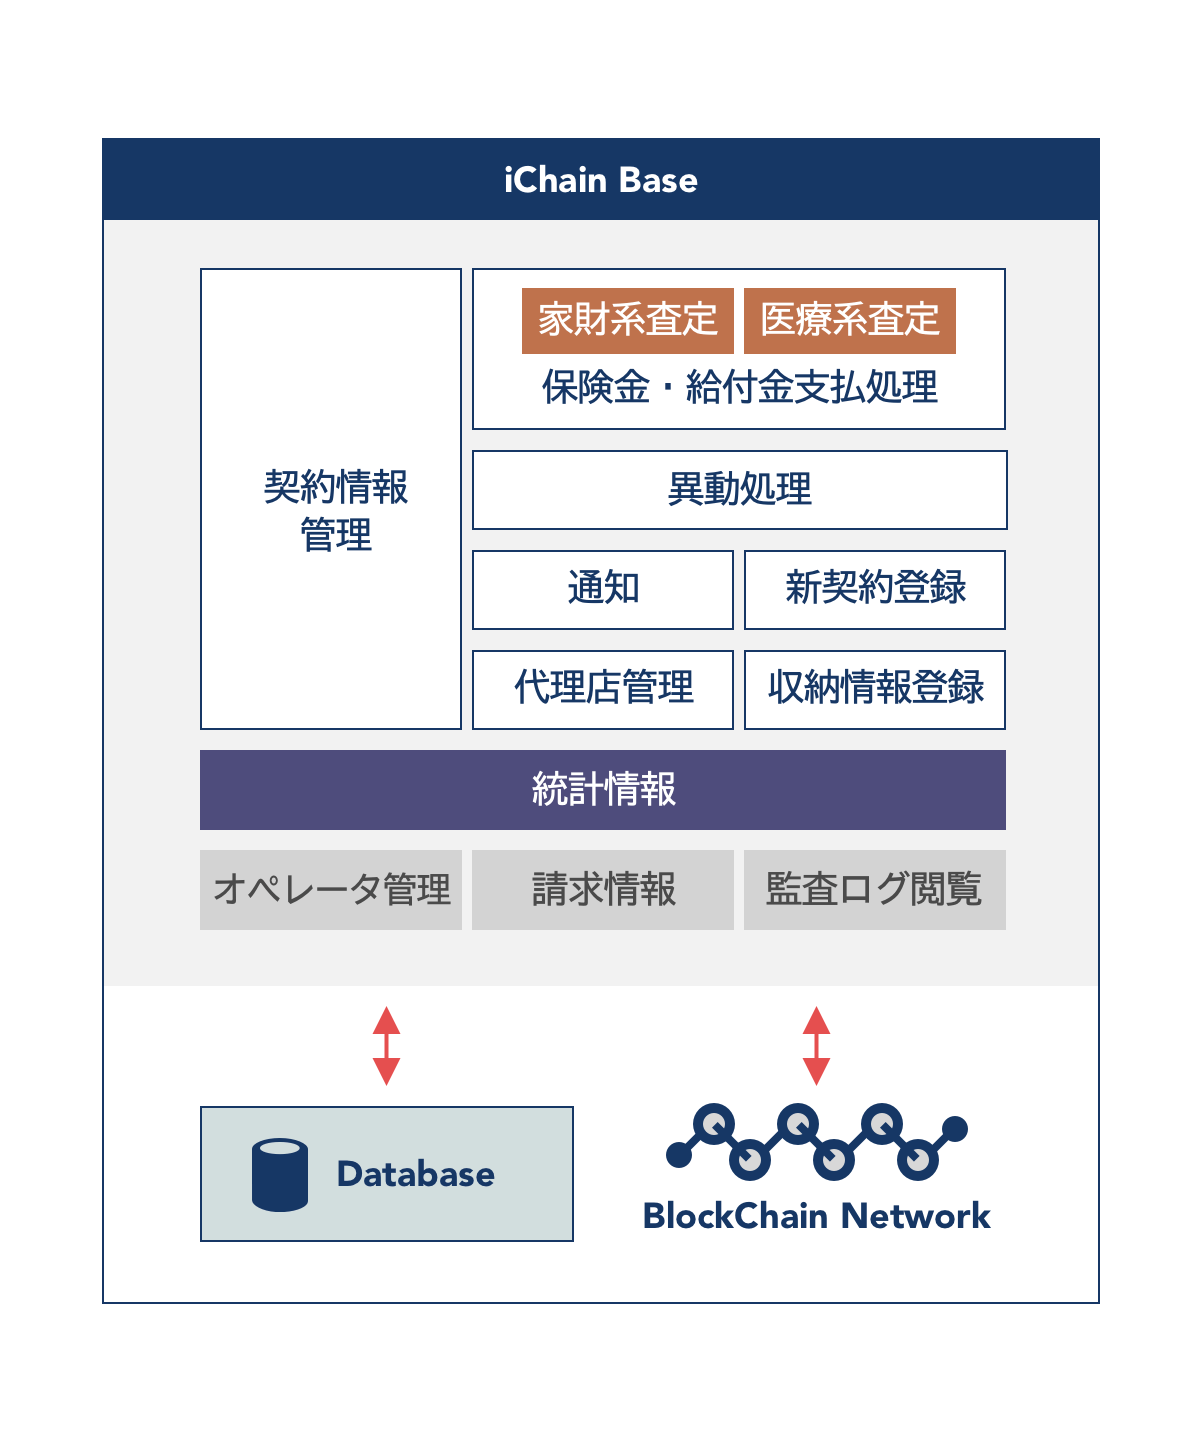 iChain Base